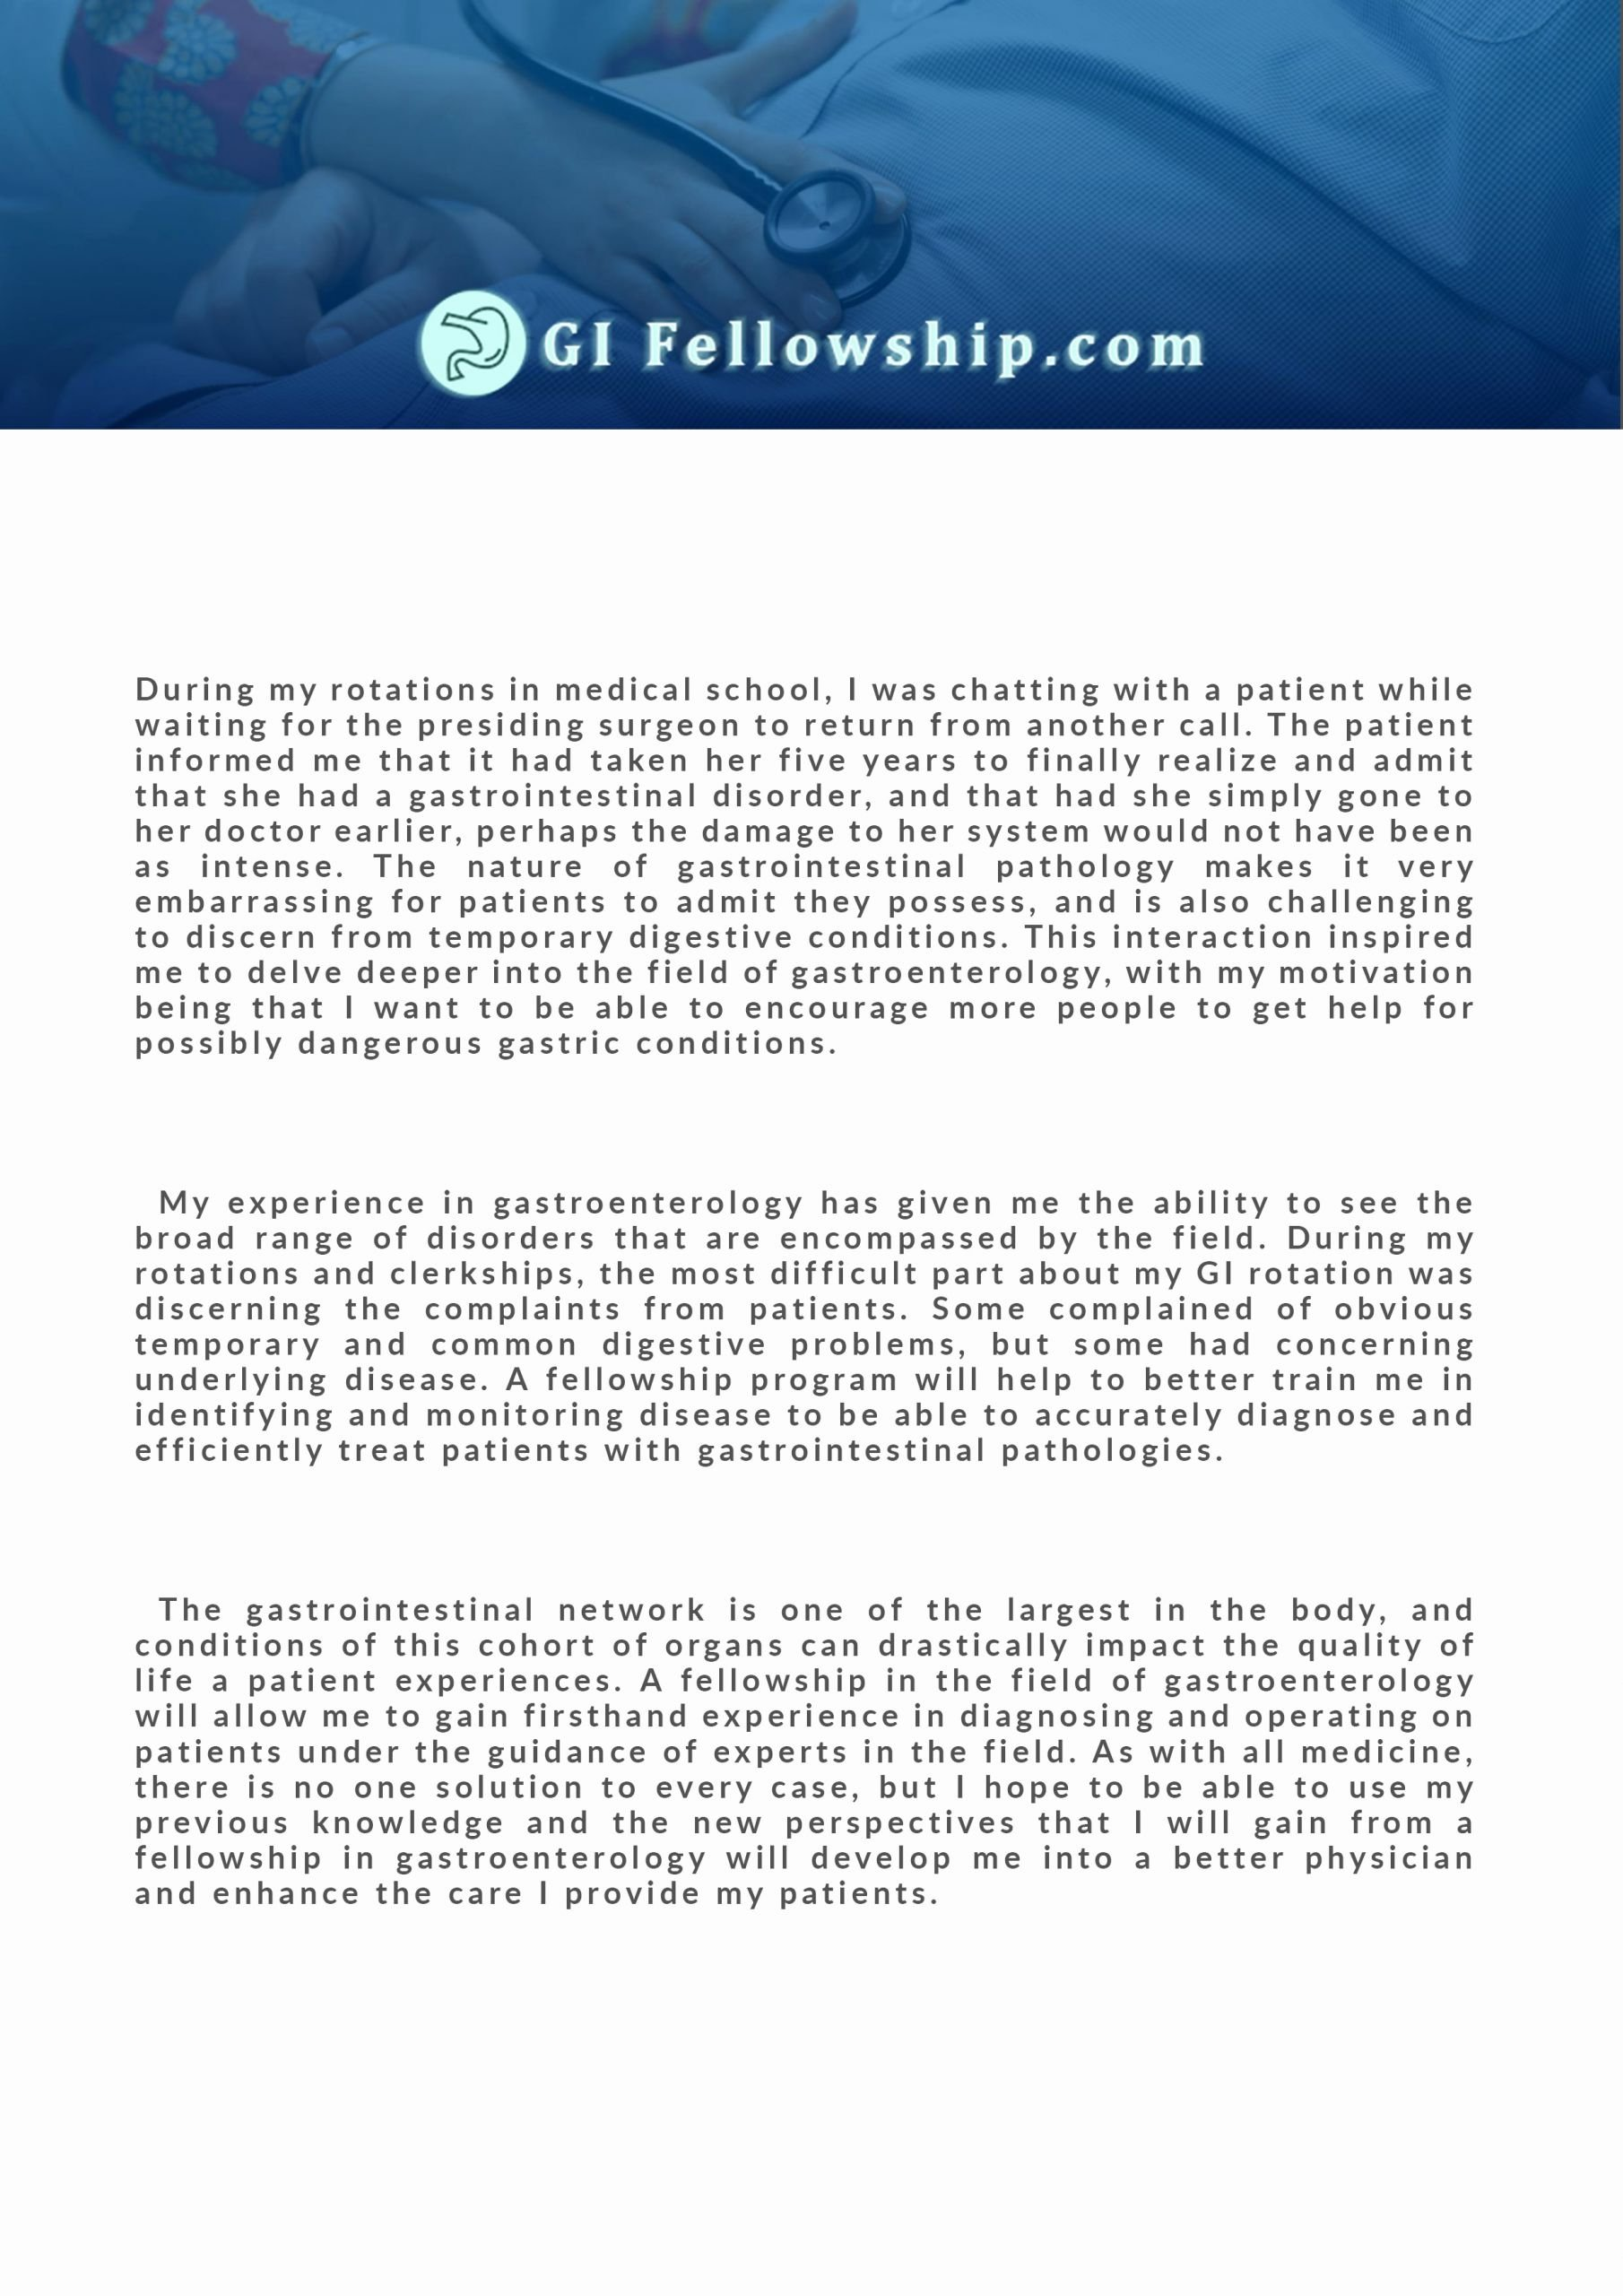 Personal Statement for Fellowship Examples Awesome Gi Fellowship Personal Statement Sample and Writing Help